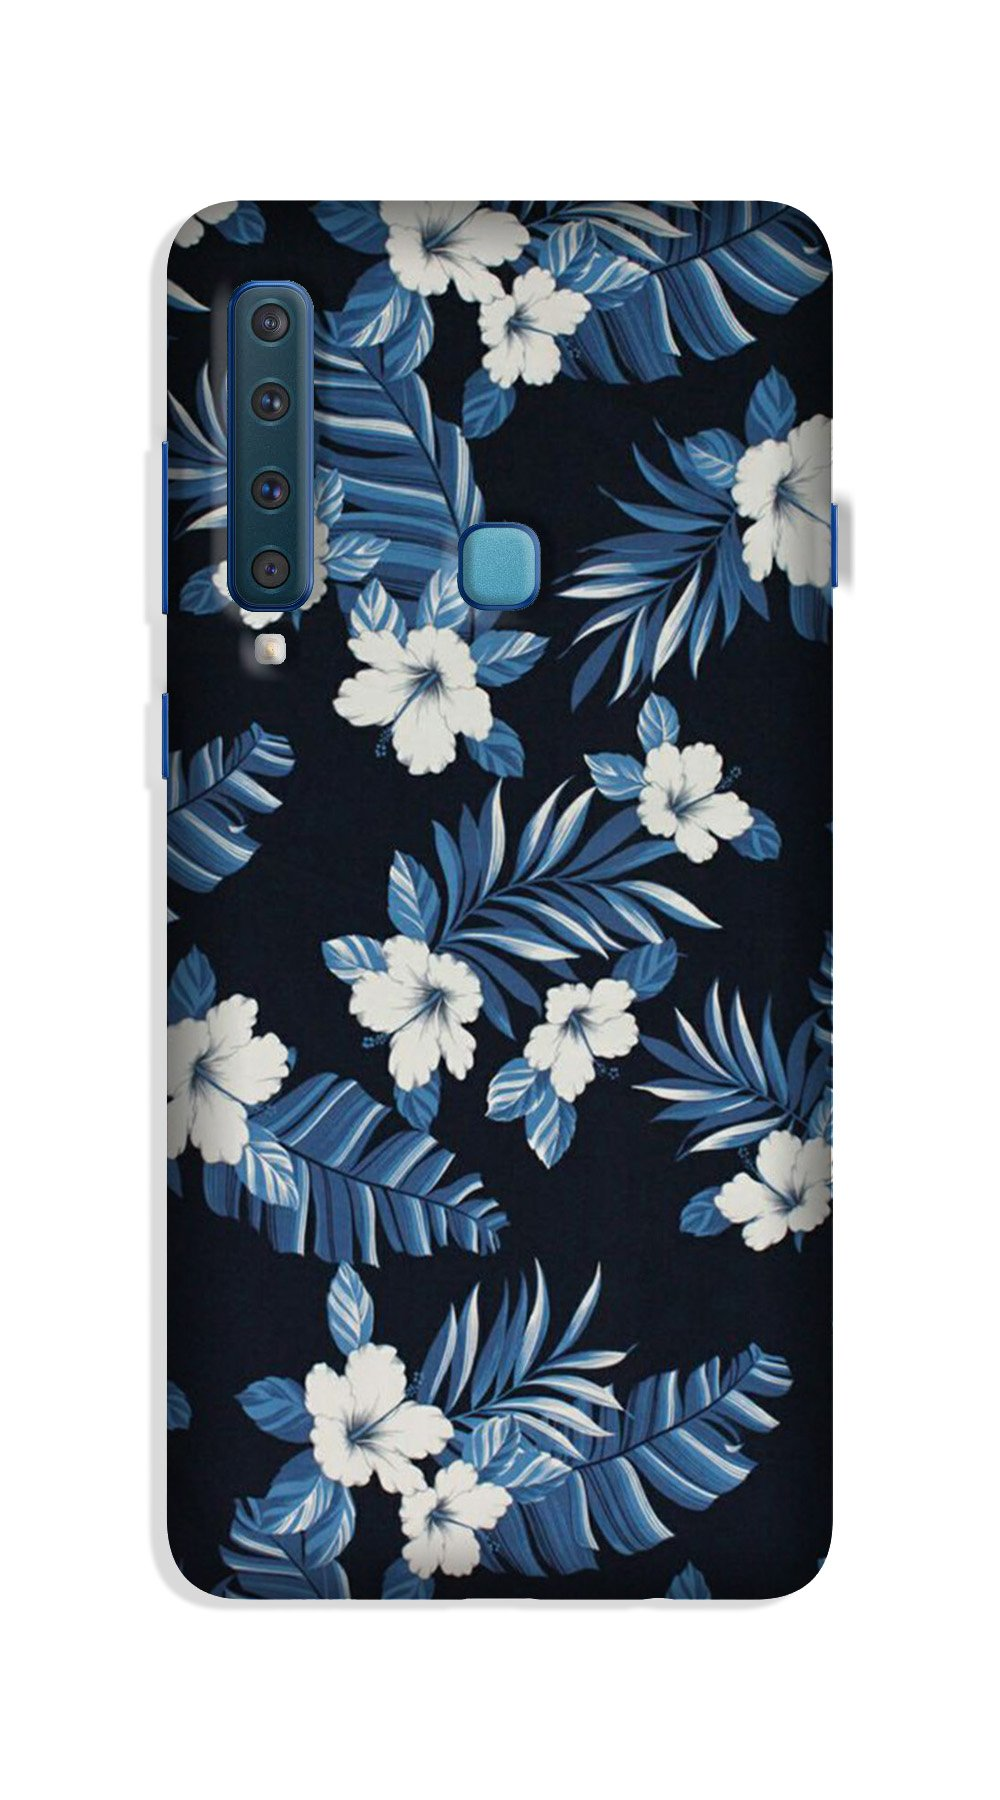 White flowers Blue Background2 Case for Galaxy A9 (2018)